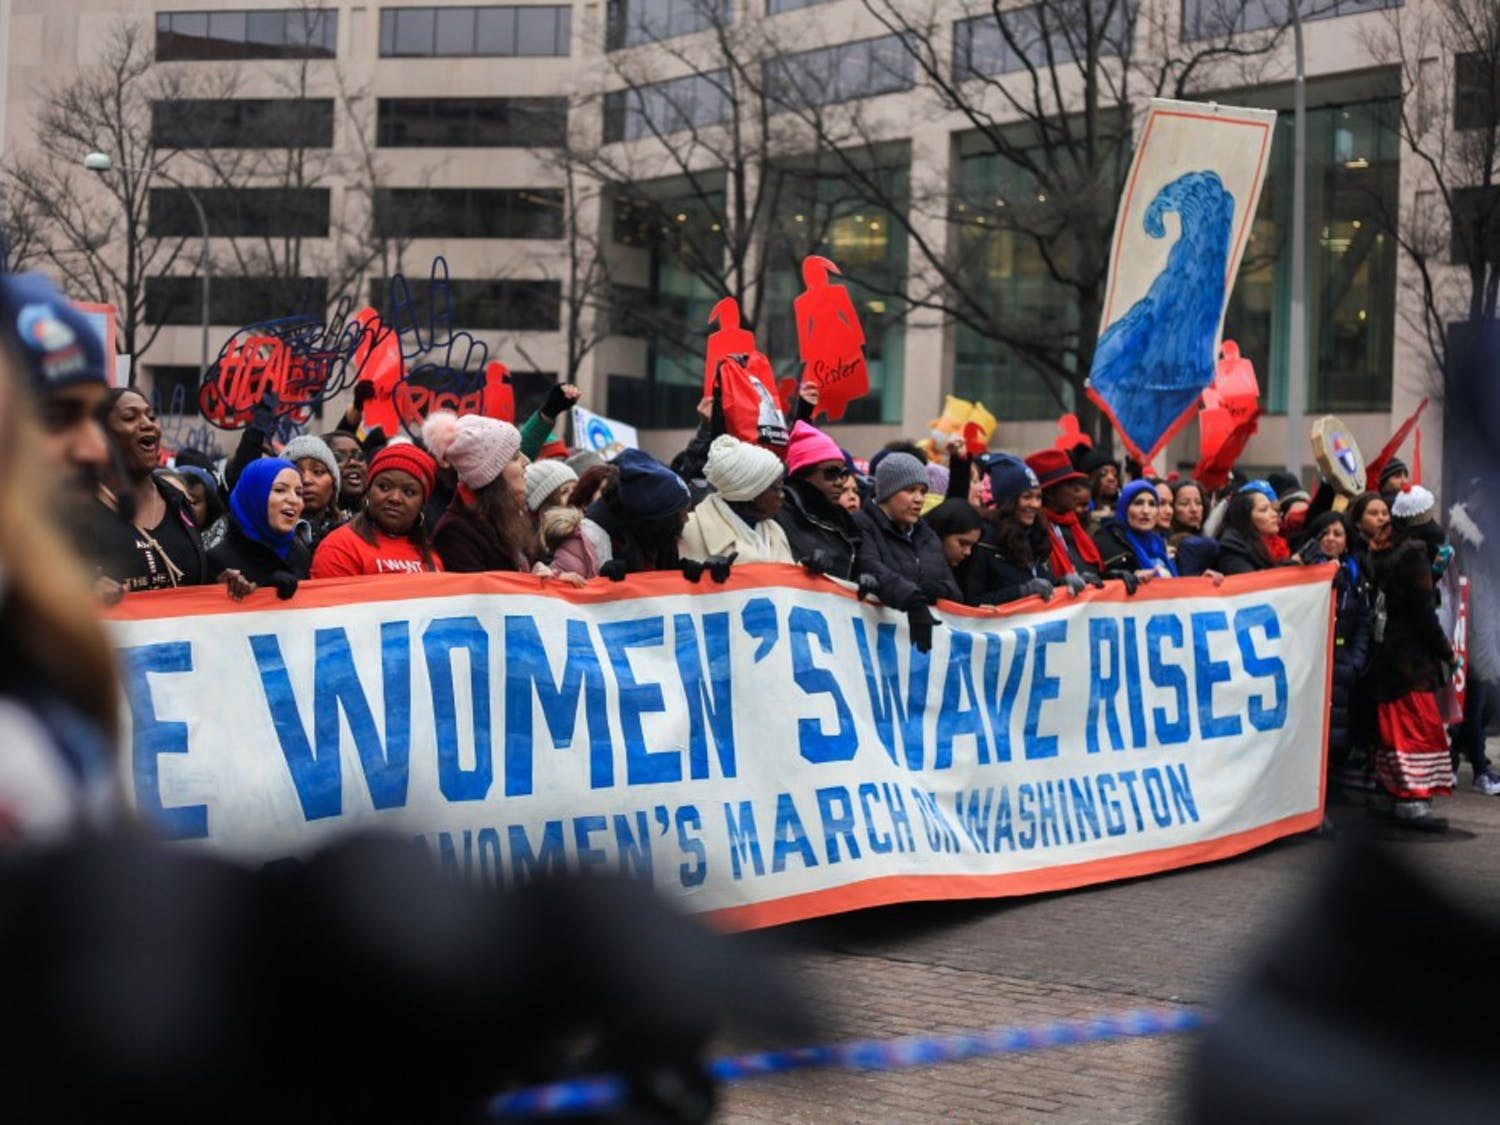 Thousands stand behind the Women's Wave Rises banner to mark the third annual Women's March on Washington since 2017.  The march began on Pennsylvania Avenue in front of the Trump International Hotel in Washington D.C. on Saturday, Jan. 19, 2019